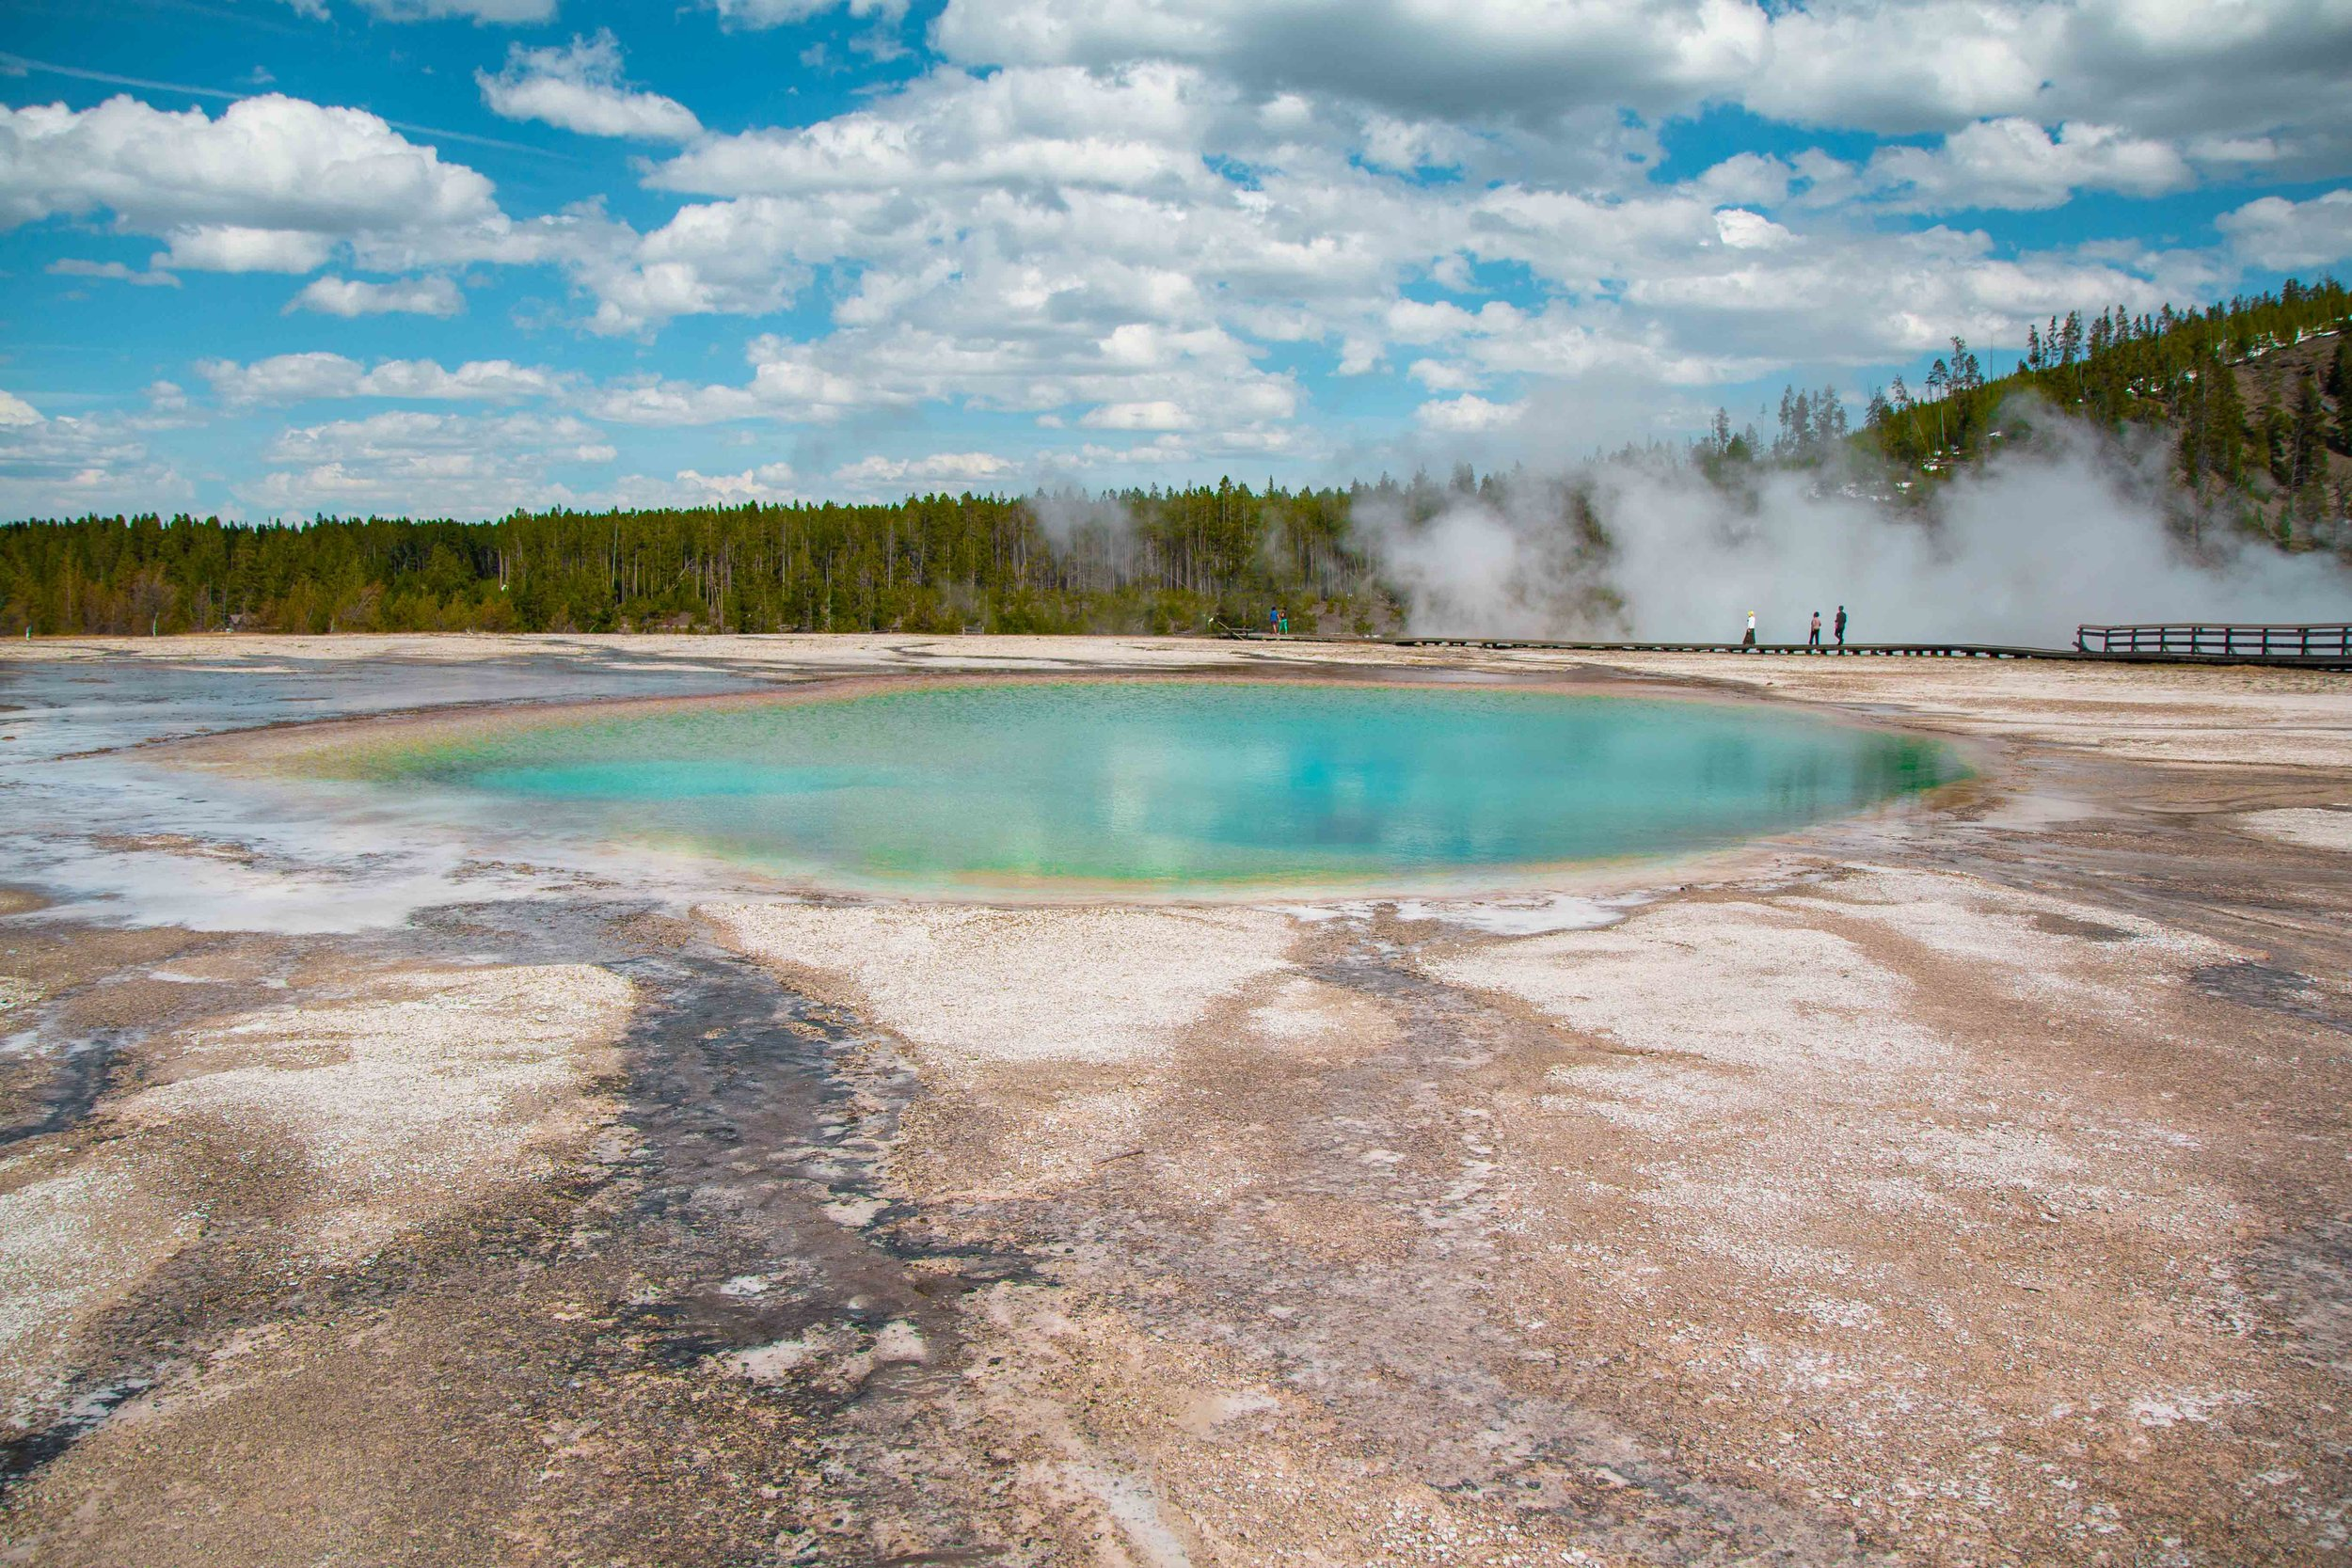 Midway Geyser Basin | The Ultimate Travel Guide for Yellowstone National Park by Travel + Lifestyle blogger Bri Sul